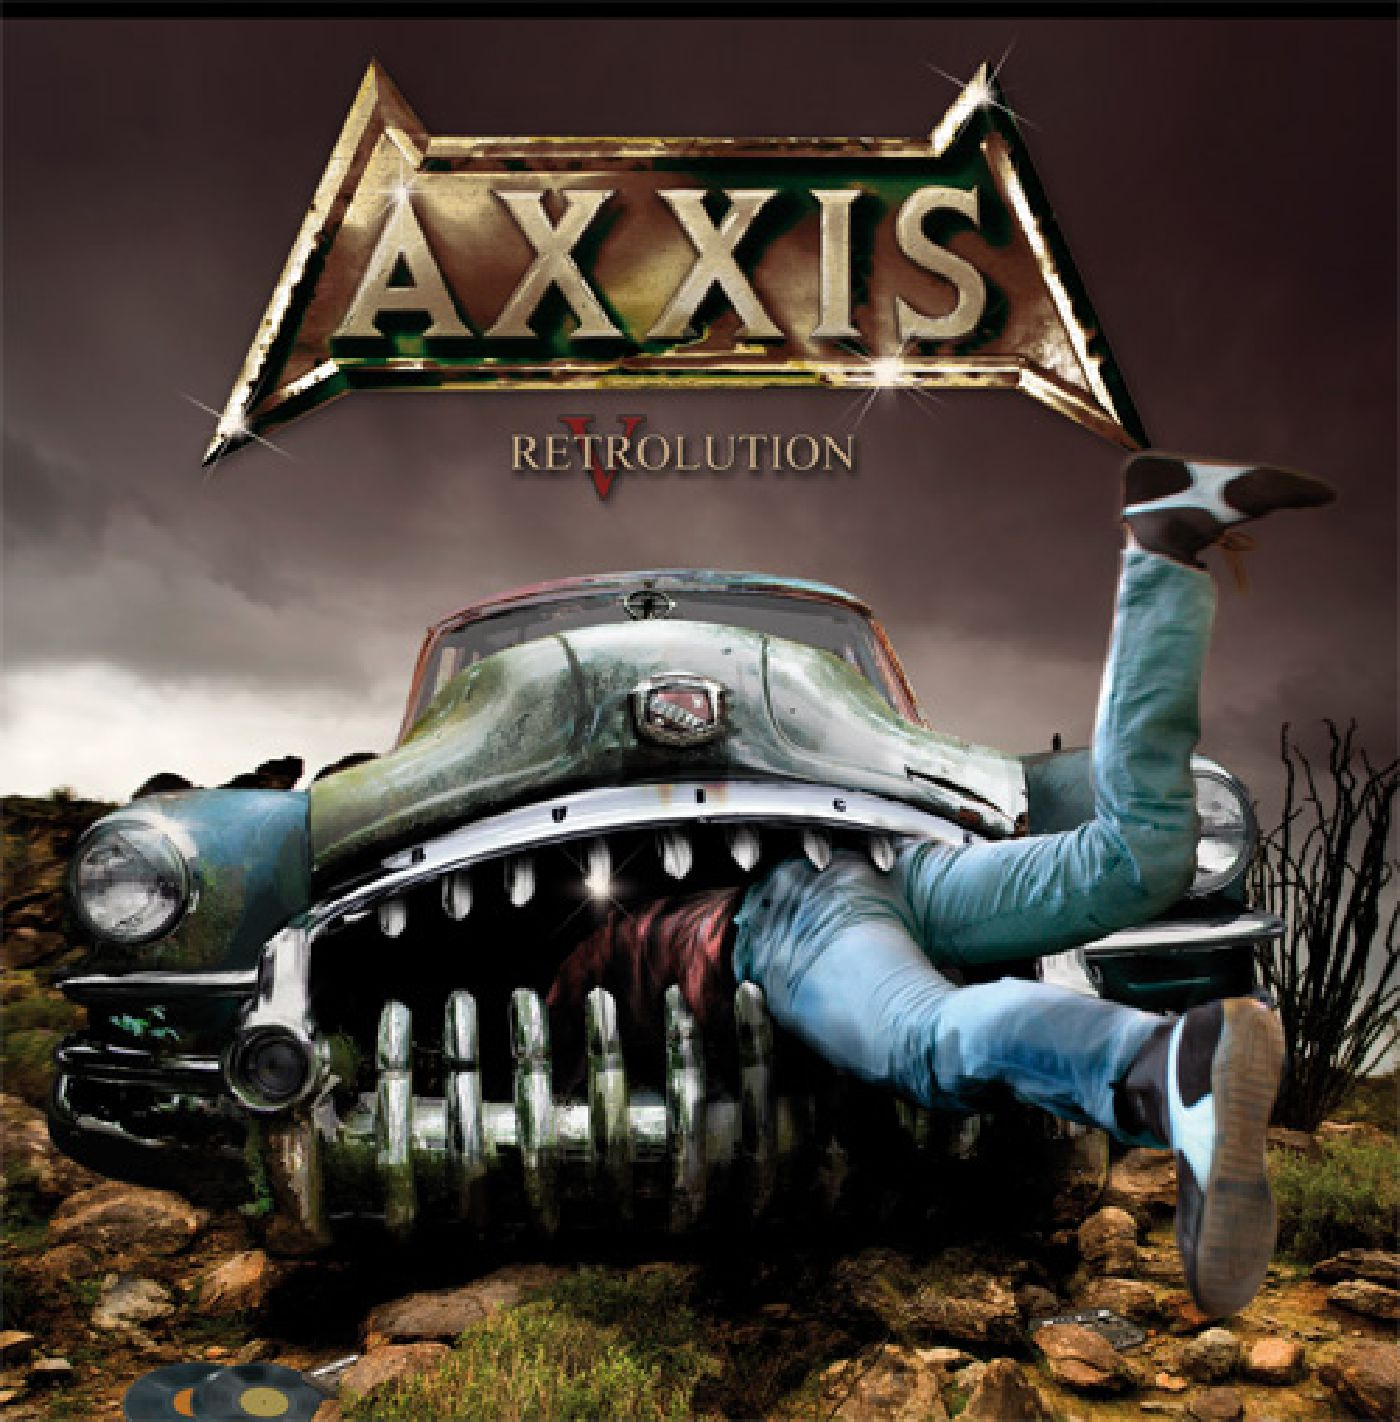 AXXIS Retrolution 2017